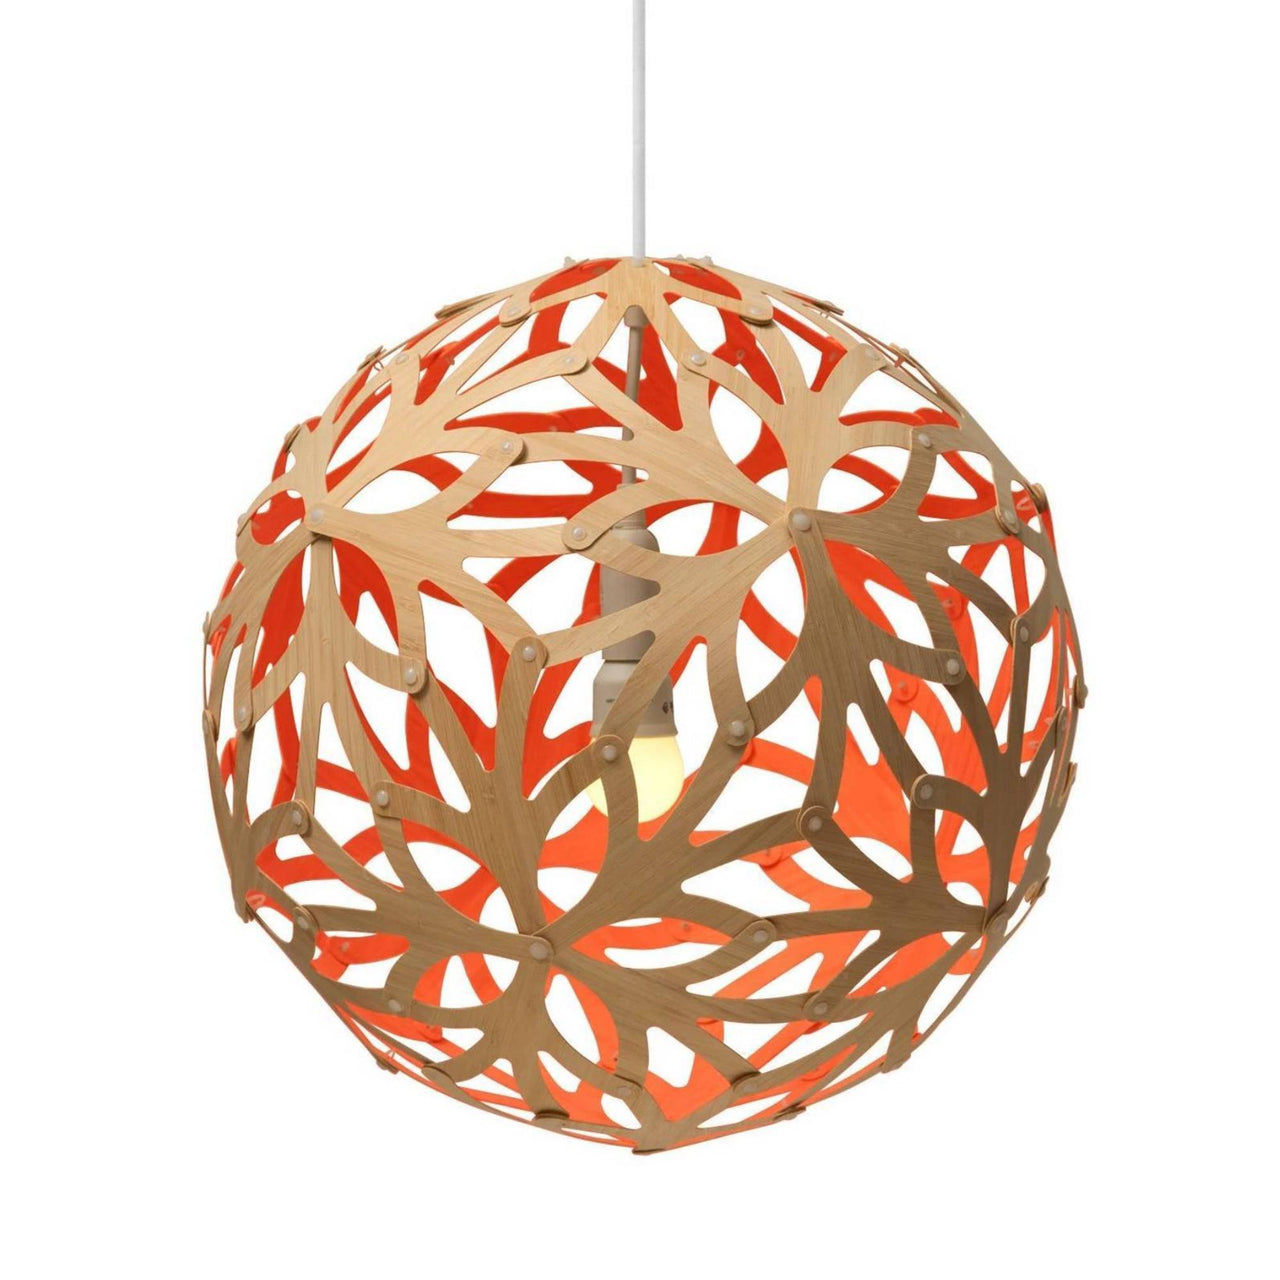 Floral Pendant Light: 800 + Red